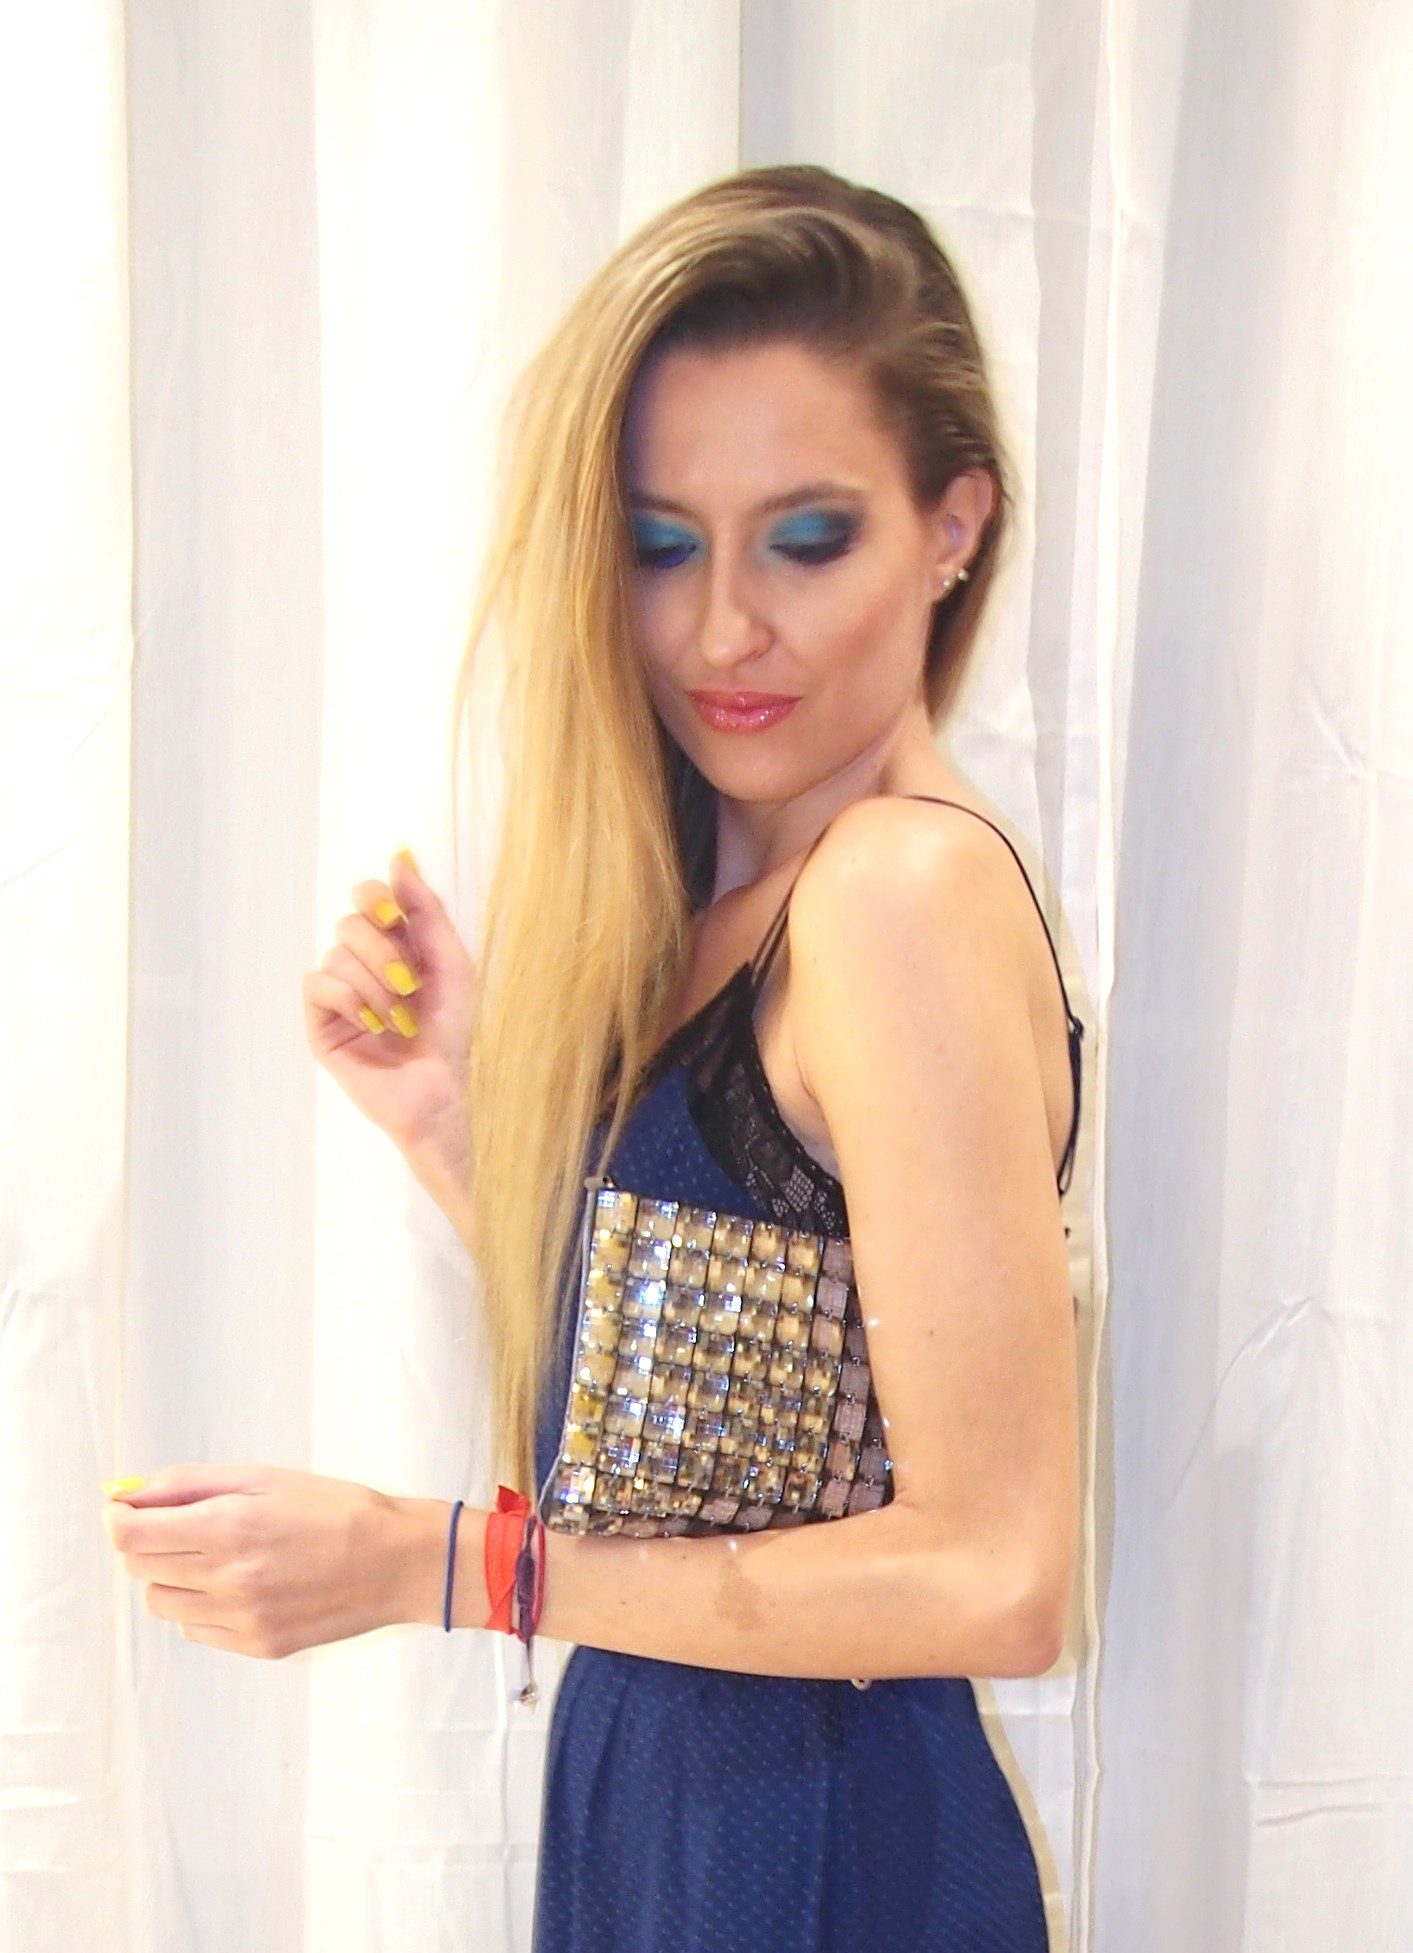 Stradivarius_Dress_Sdjack_Belt_Louis_Vuitton_Volum_Bags_Lara_Martin_Gilarranz_Bymyheels